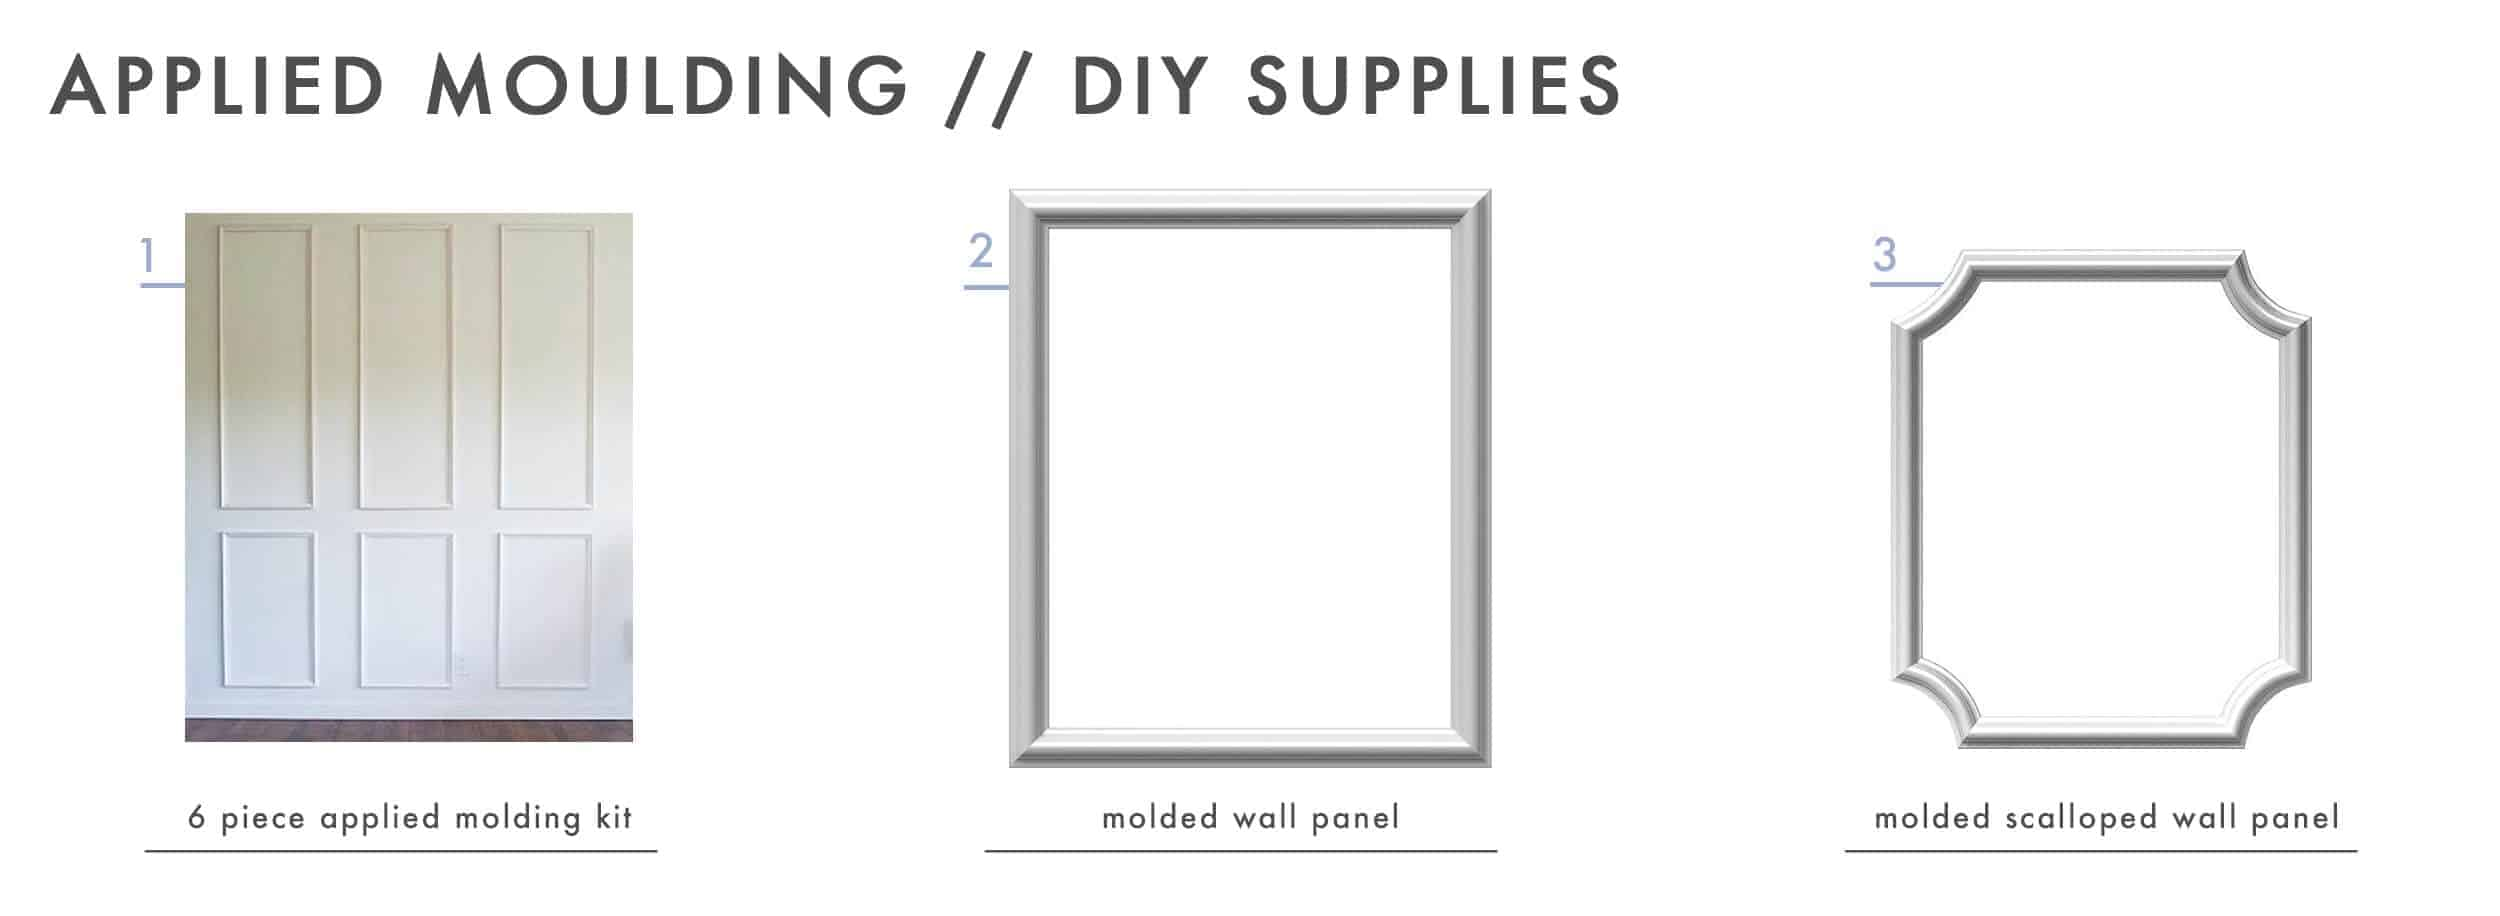 How To Add Character And Charm To Boring Architecture And Houses Applied Moulding Diy Supplies1